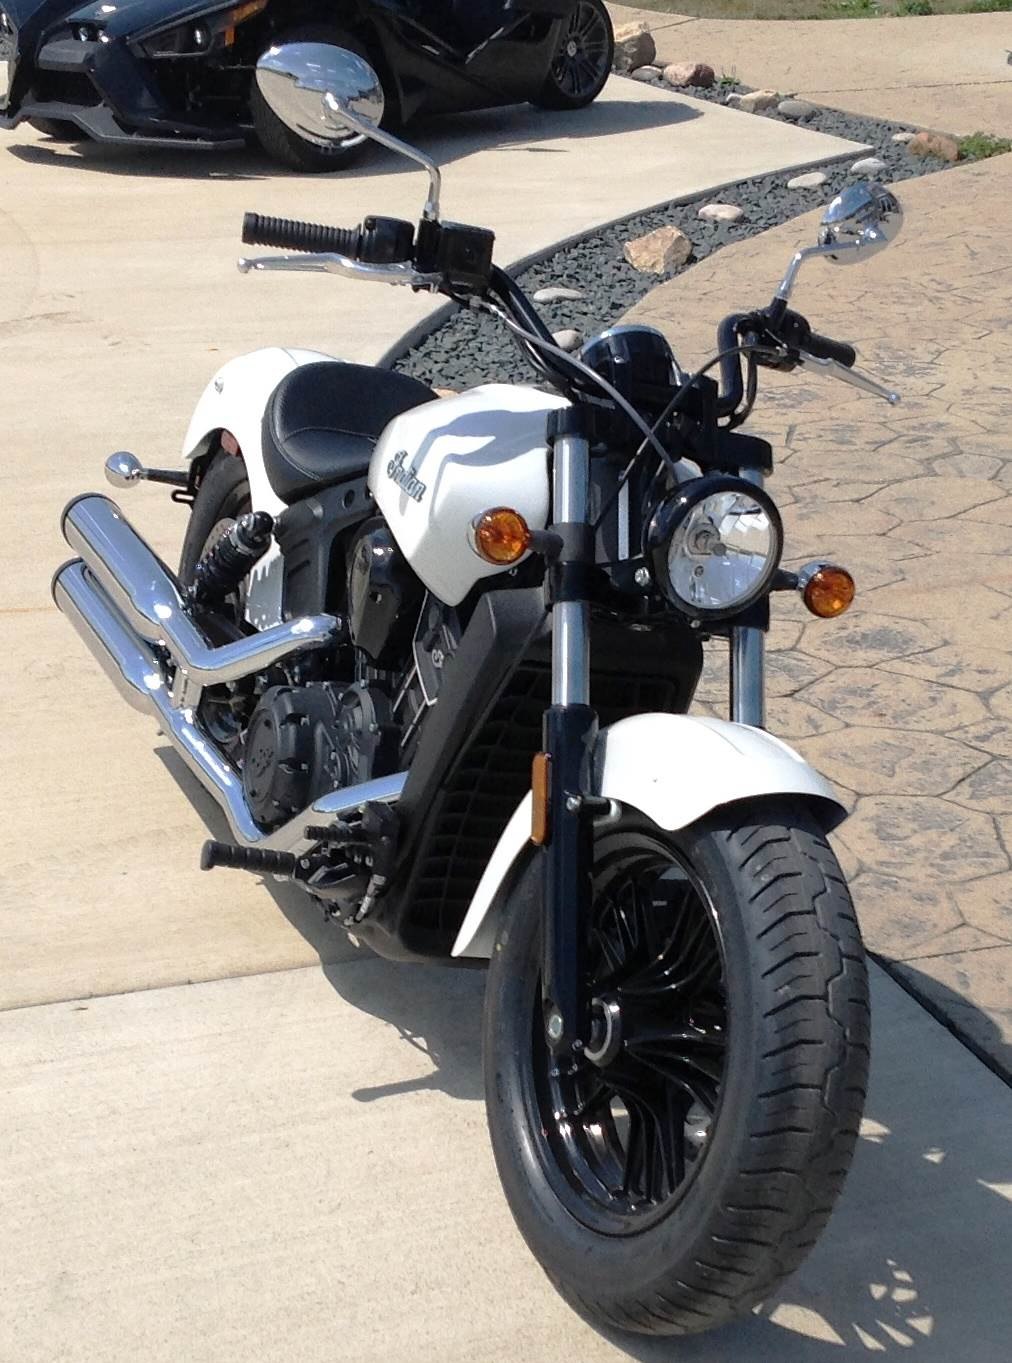 2017 Indian Scout Sixty 3